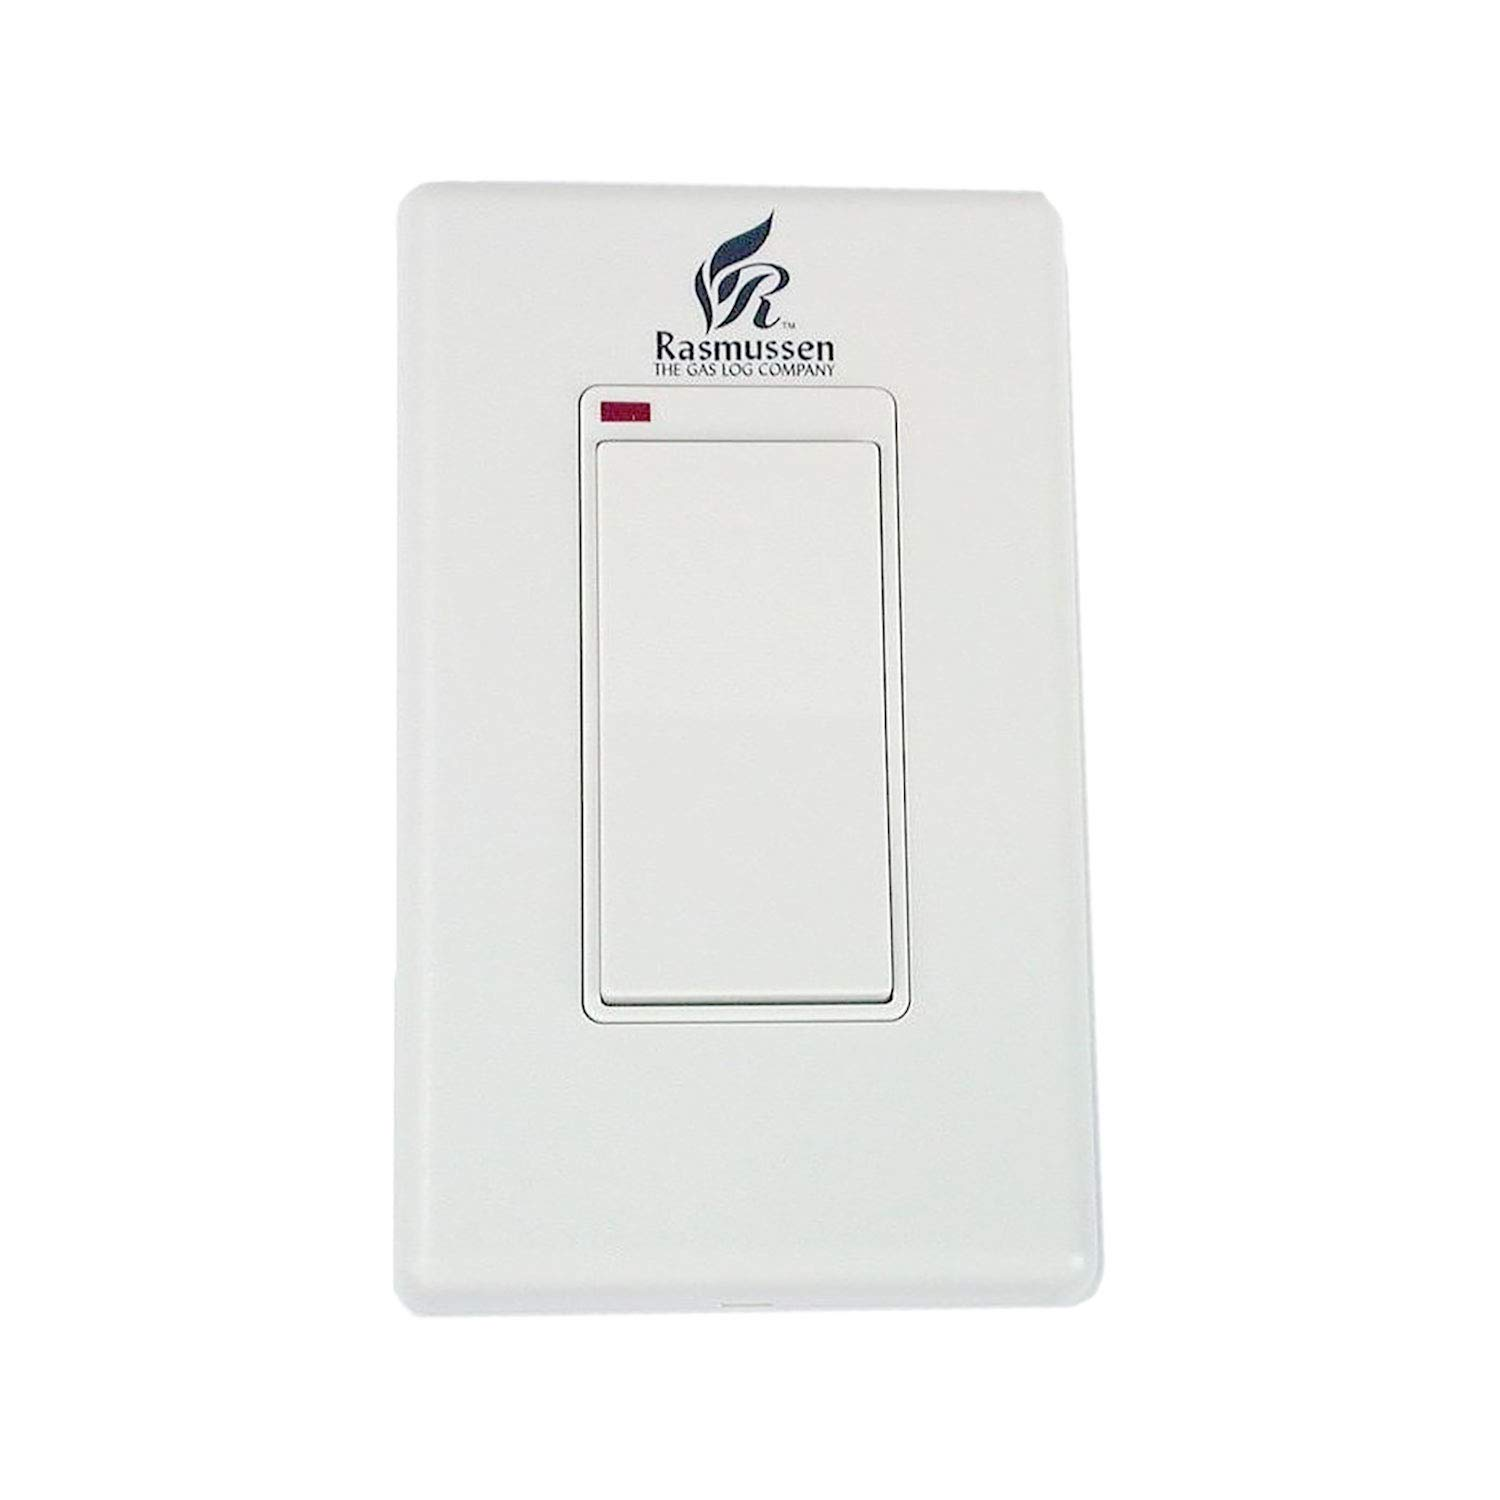 Rasmussen Wireless Wall On/Off Fireplace Remote Control - (WS-2R) by Rasmussen